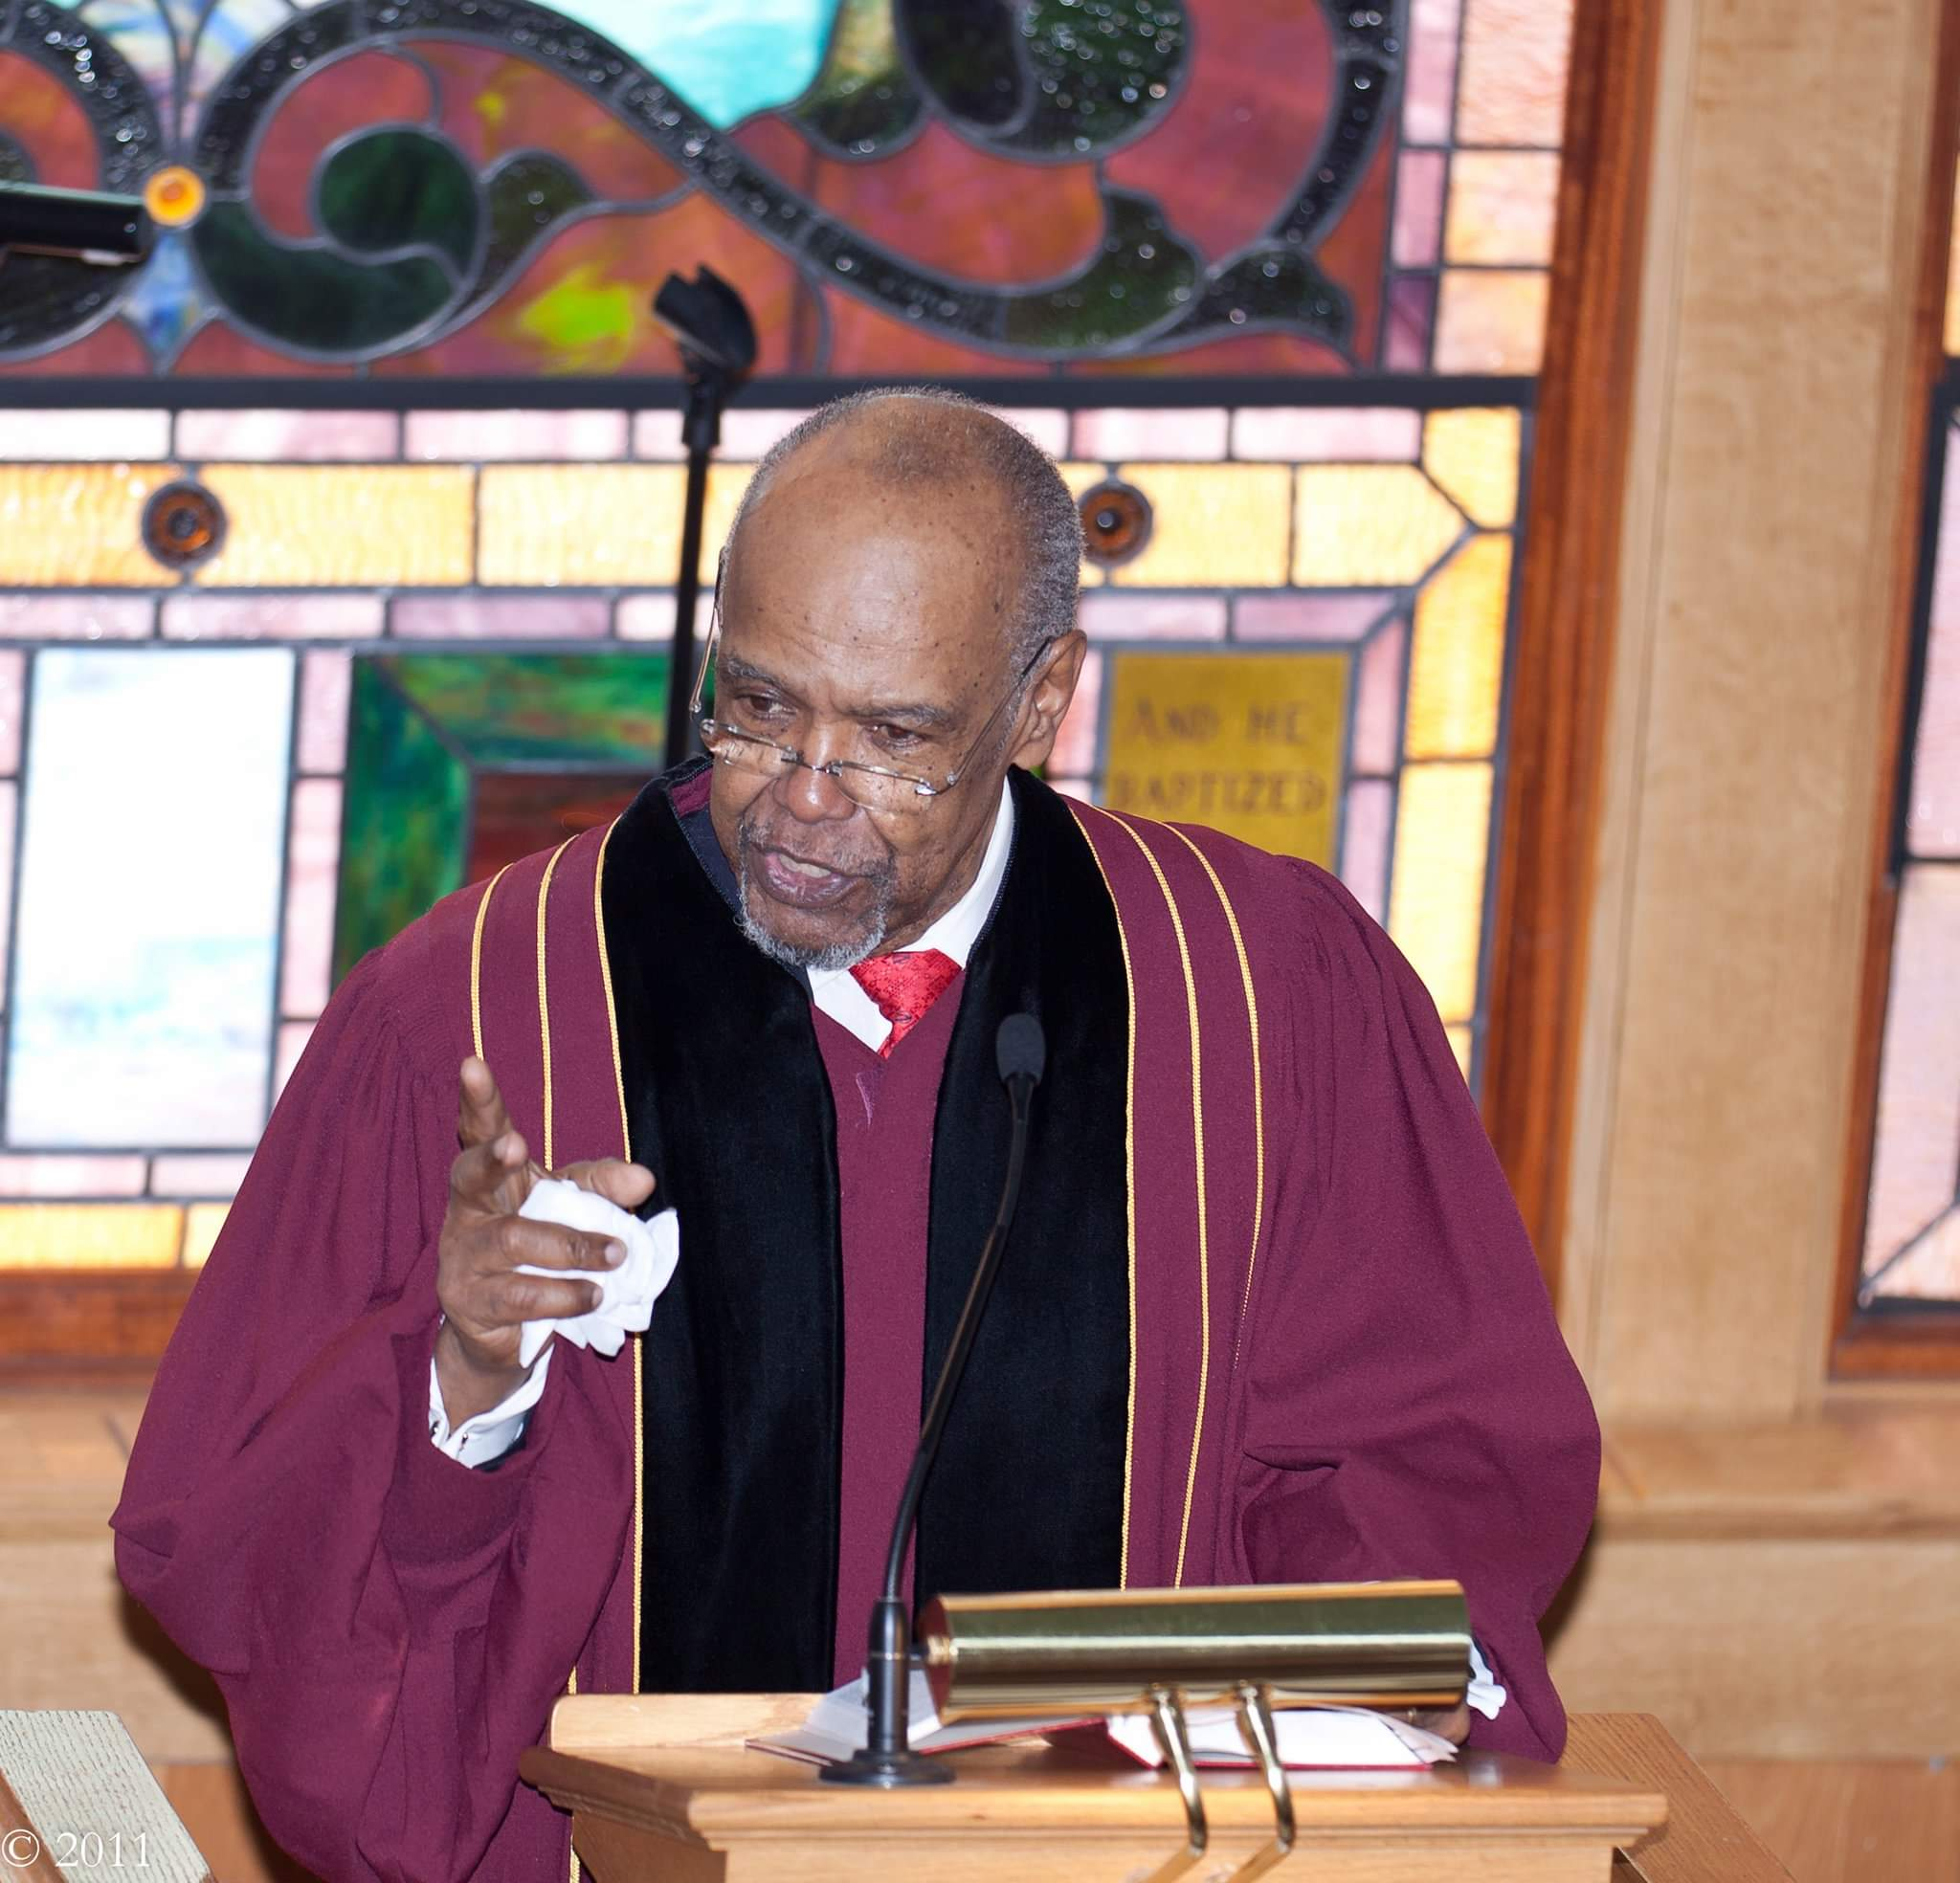 SERMONS - Press play to listen to a sampling of Reverend Haywood's sermons.